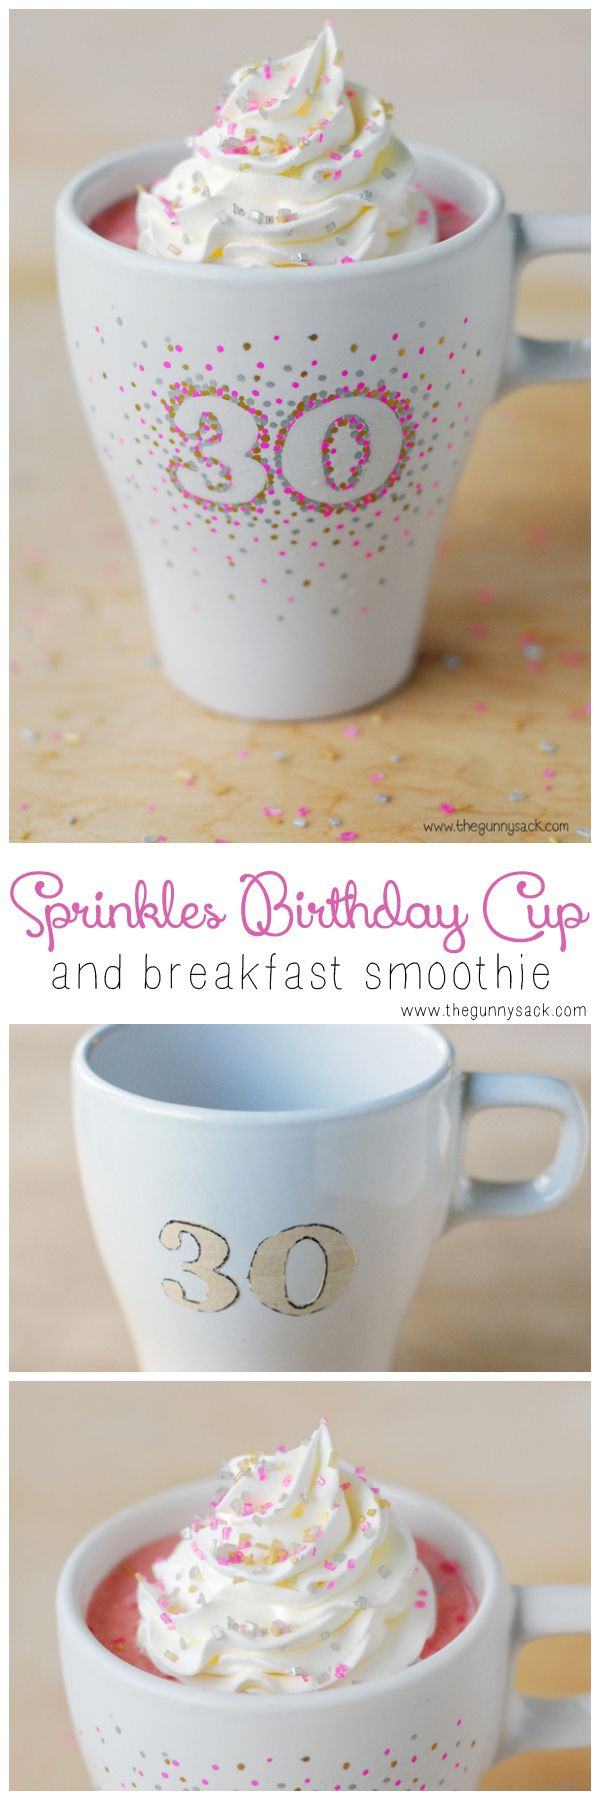 Start your birthday off right with a Sprinkles Birthday Cup and Breakfast Smoothie!